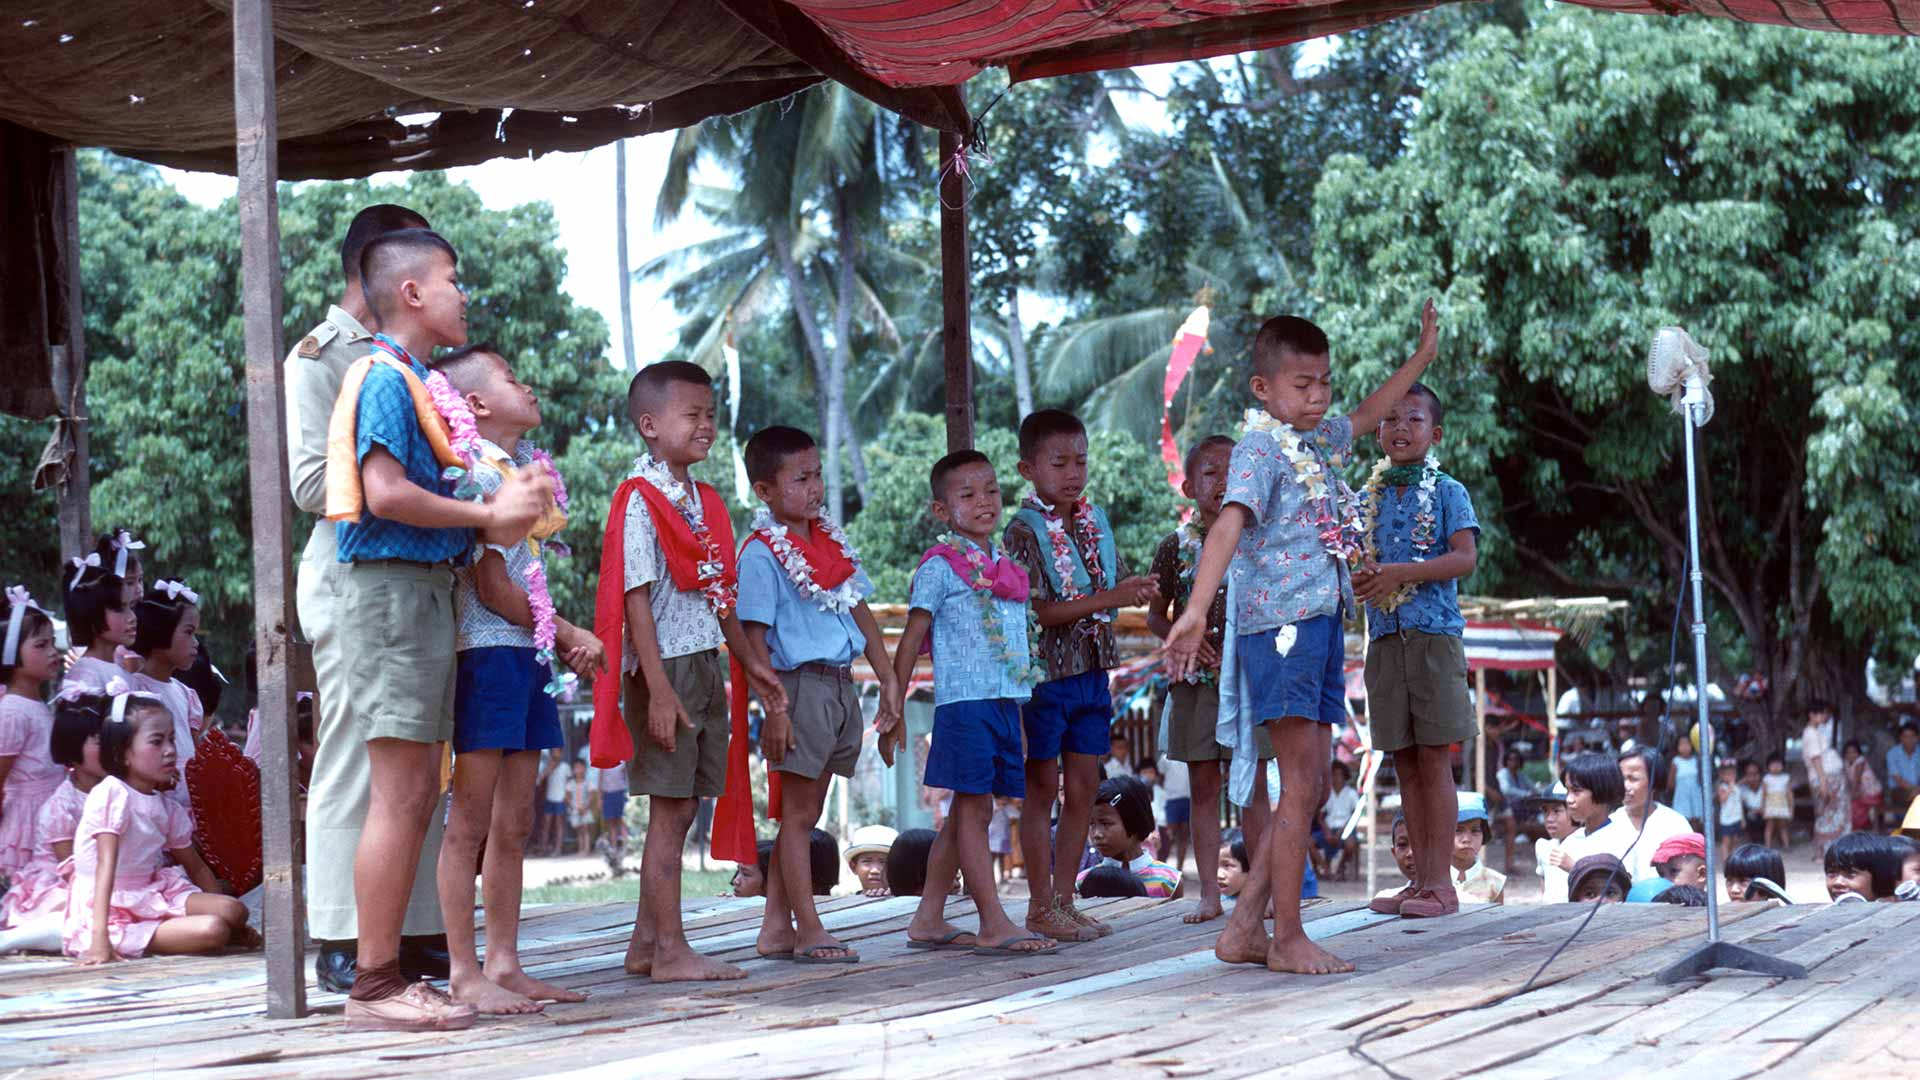 boys perform song and dance on a wooden stage